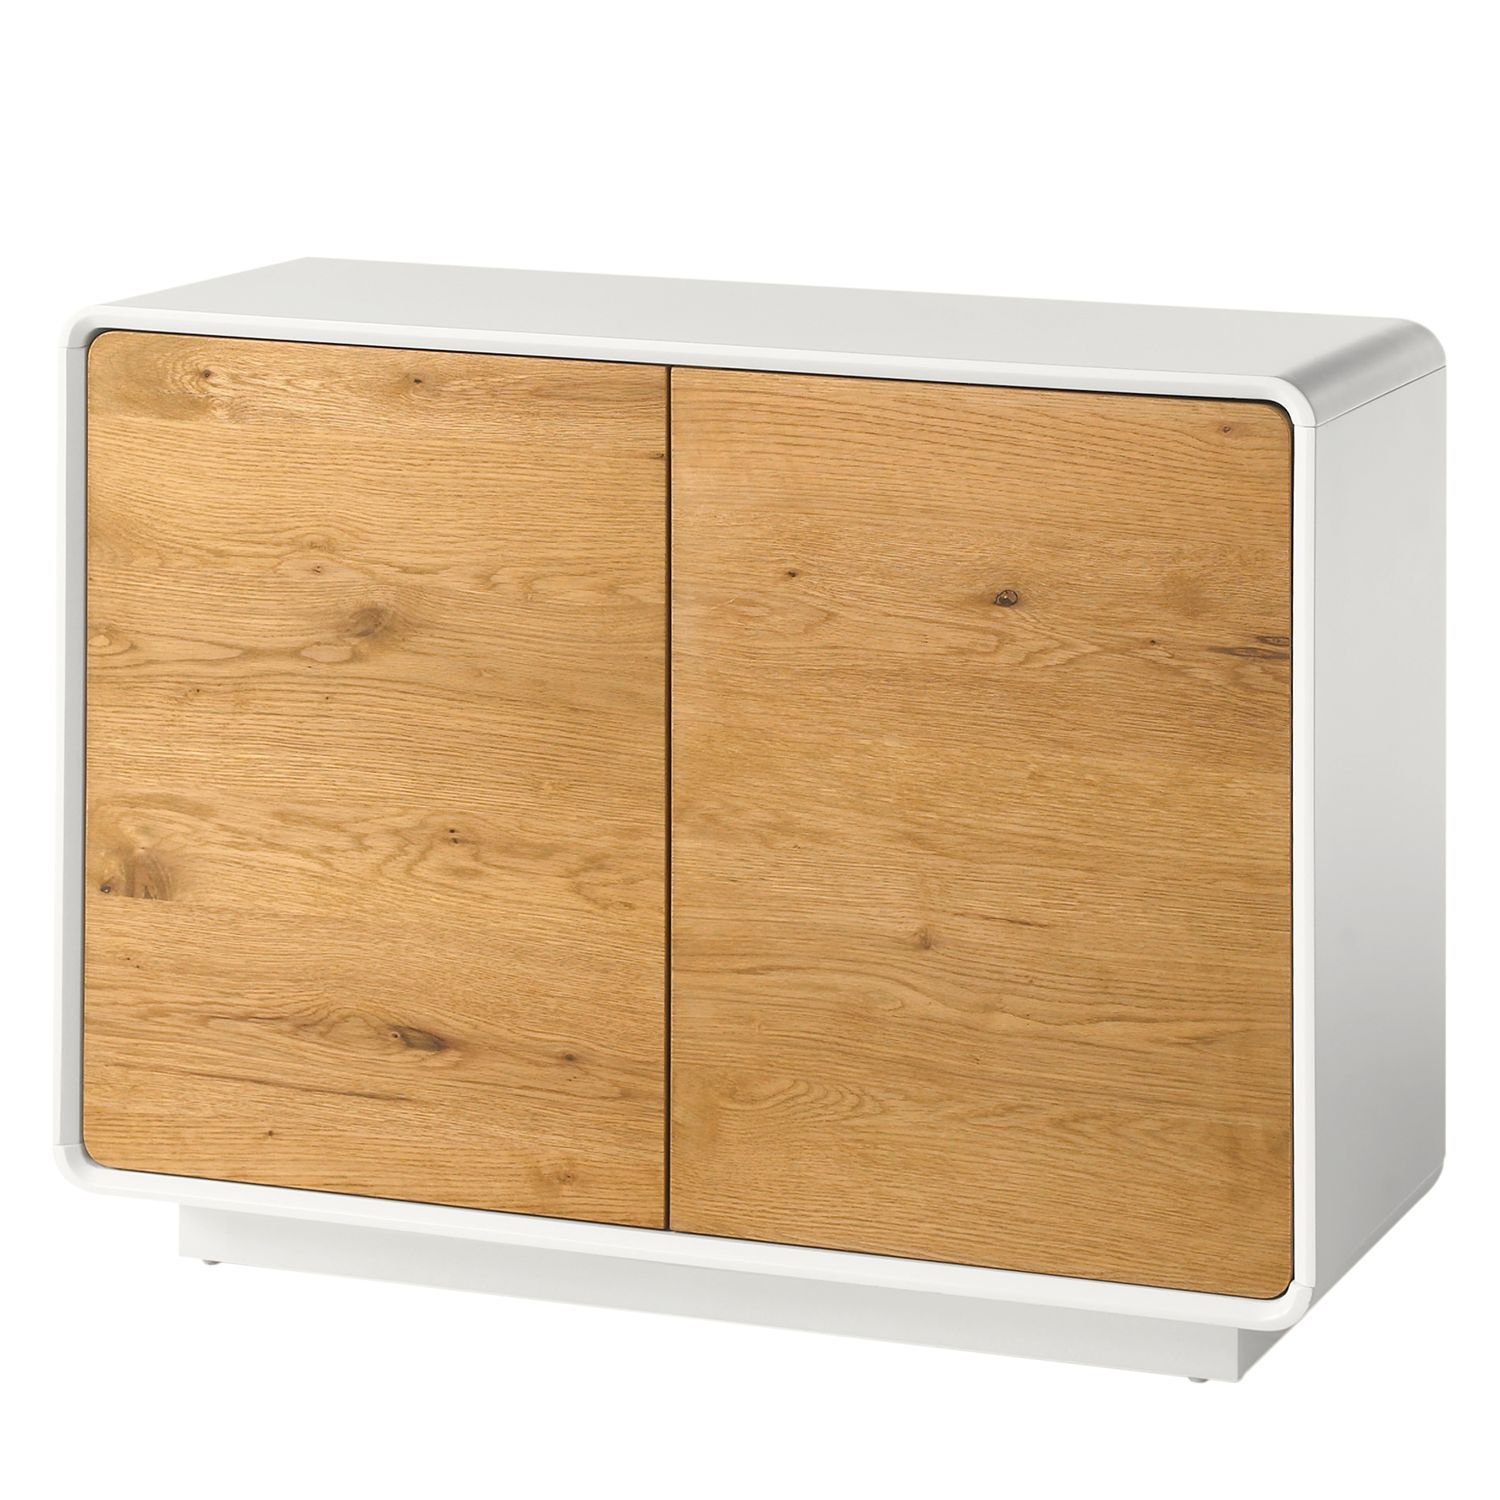 Sideboard Buche Massiv Sideboard Kommode Anrichte Wohnzimmer Kommode Boge I Products Cabinet Furniture Furniture Und